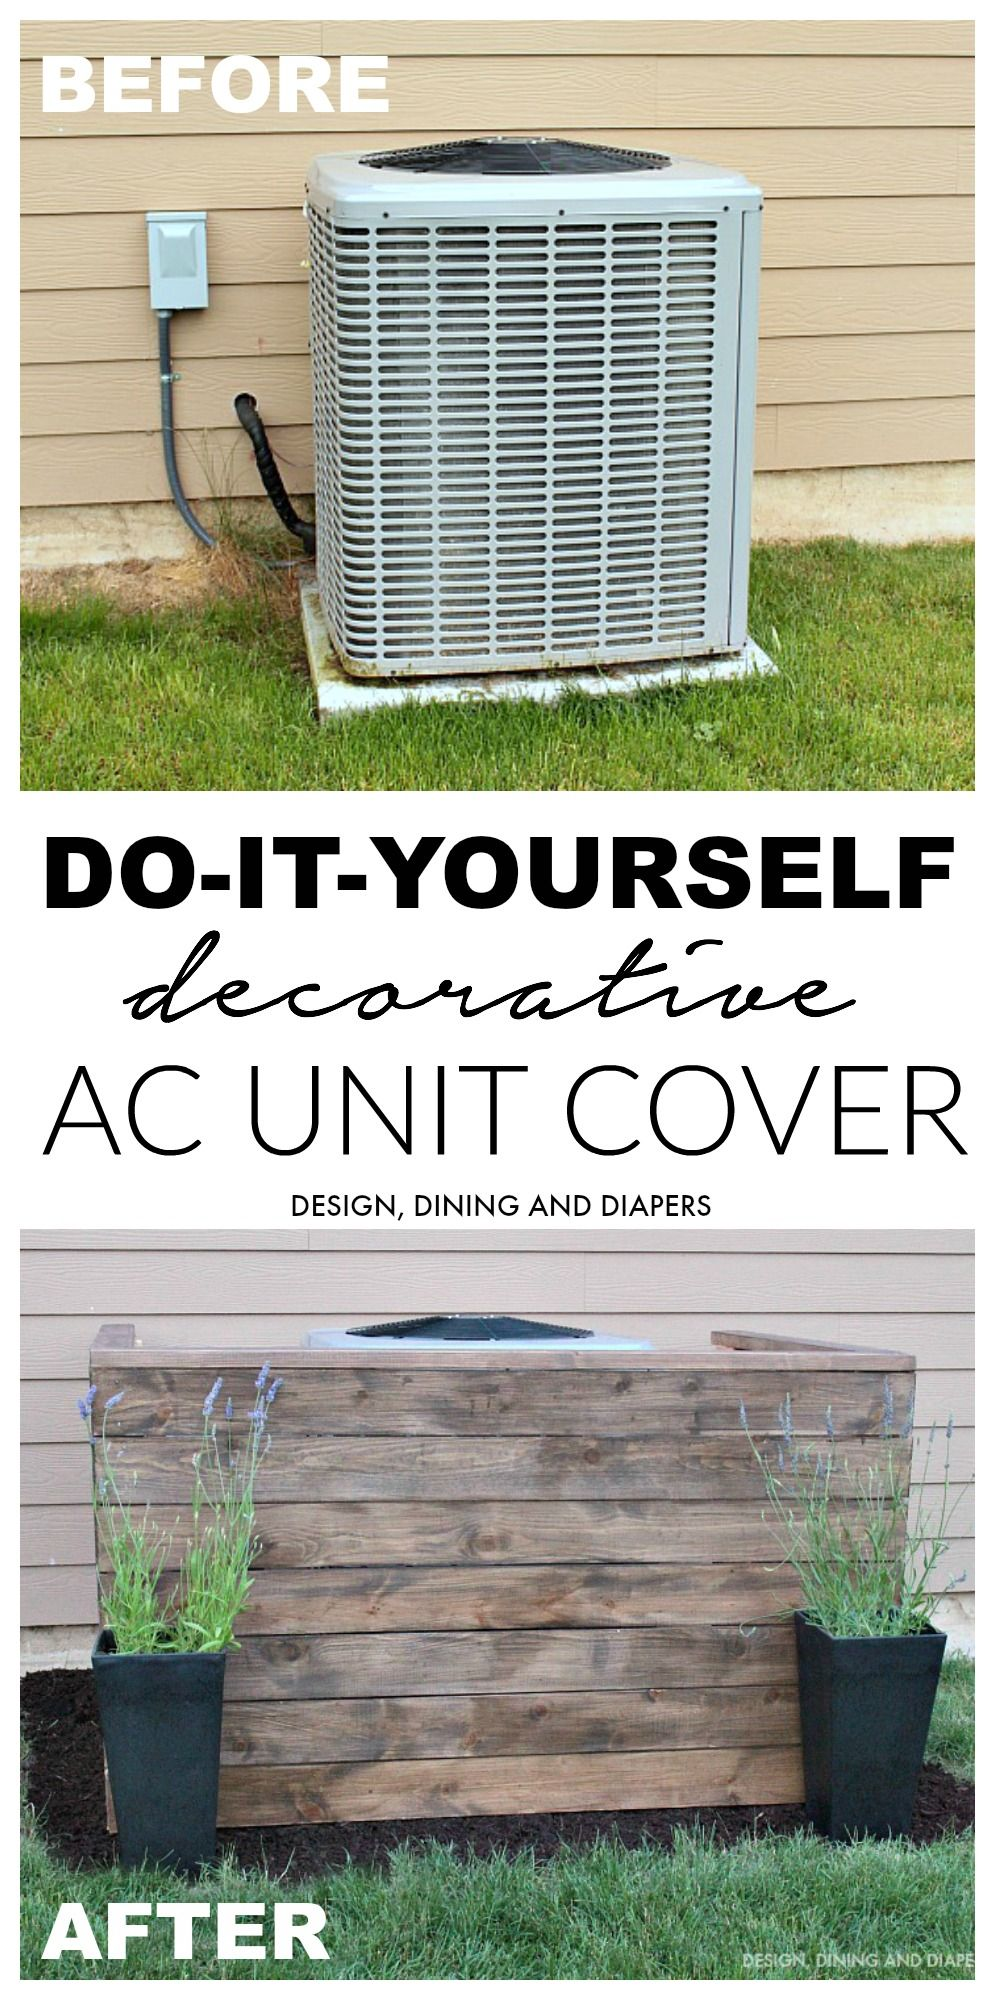 DIY AC Unit Cover - Design, Dining + Diapers